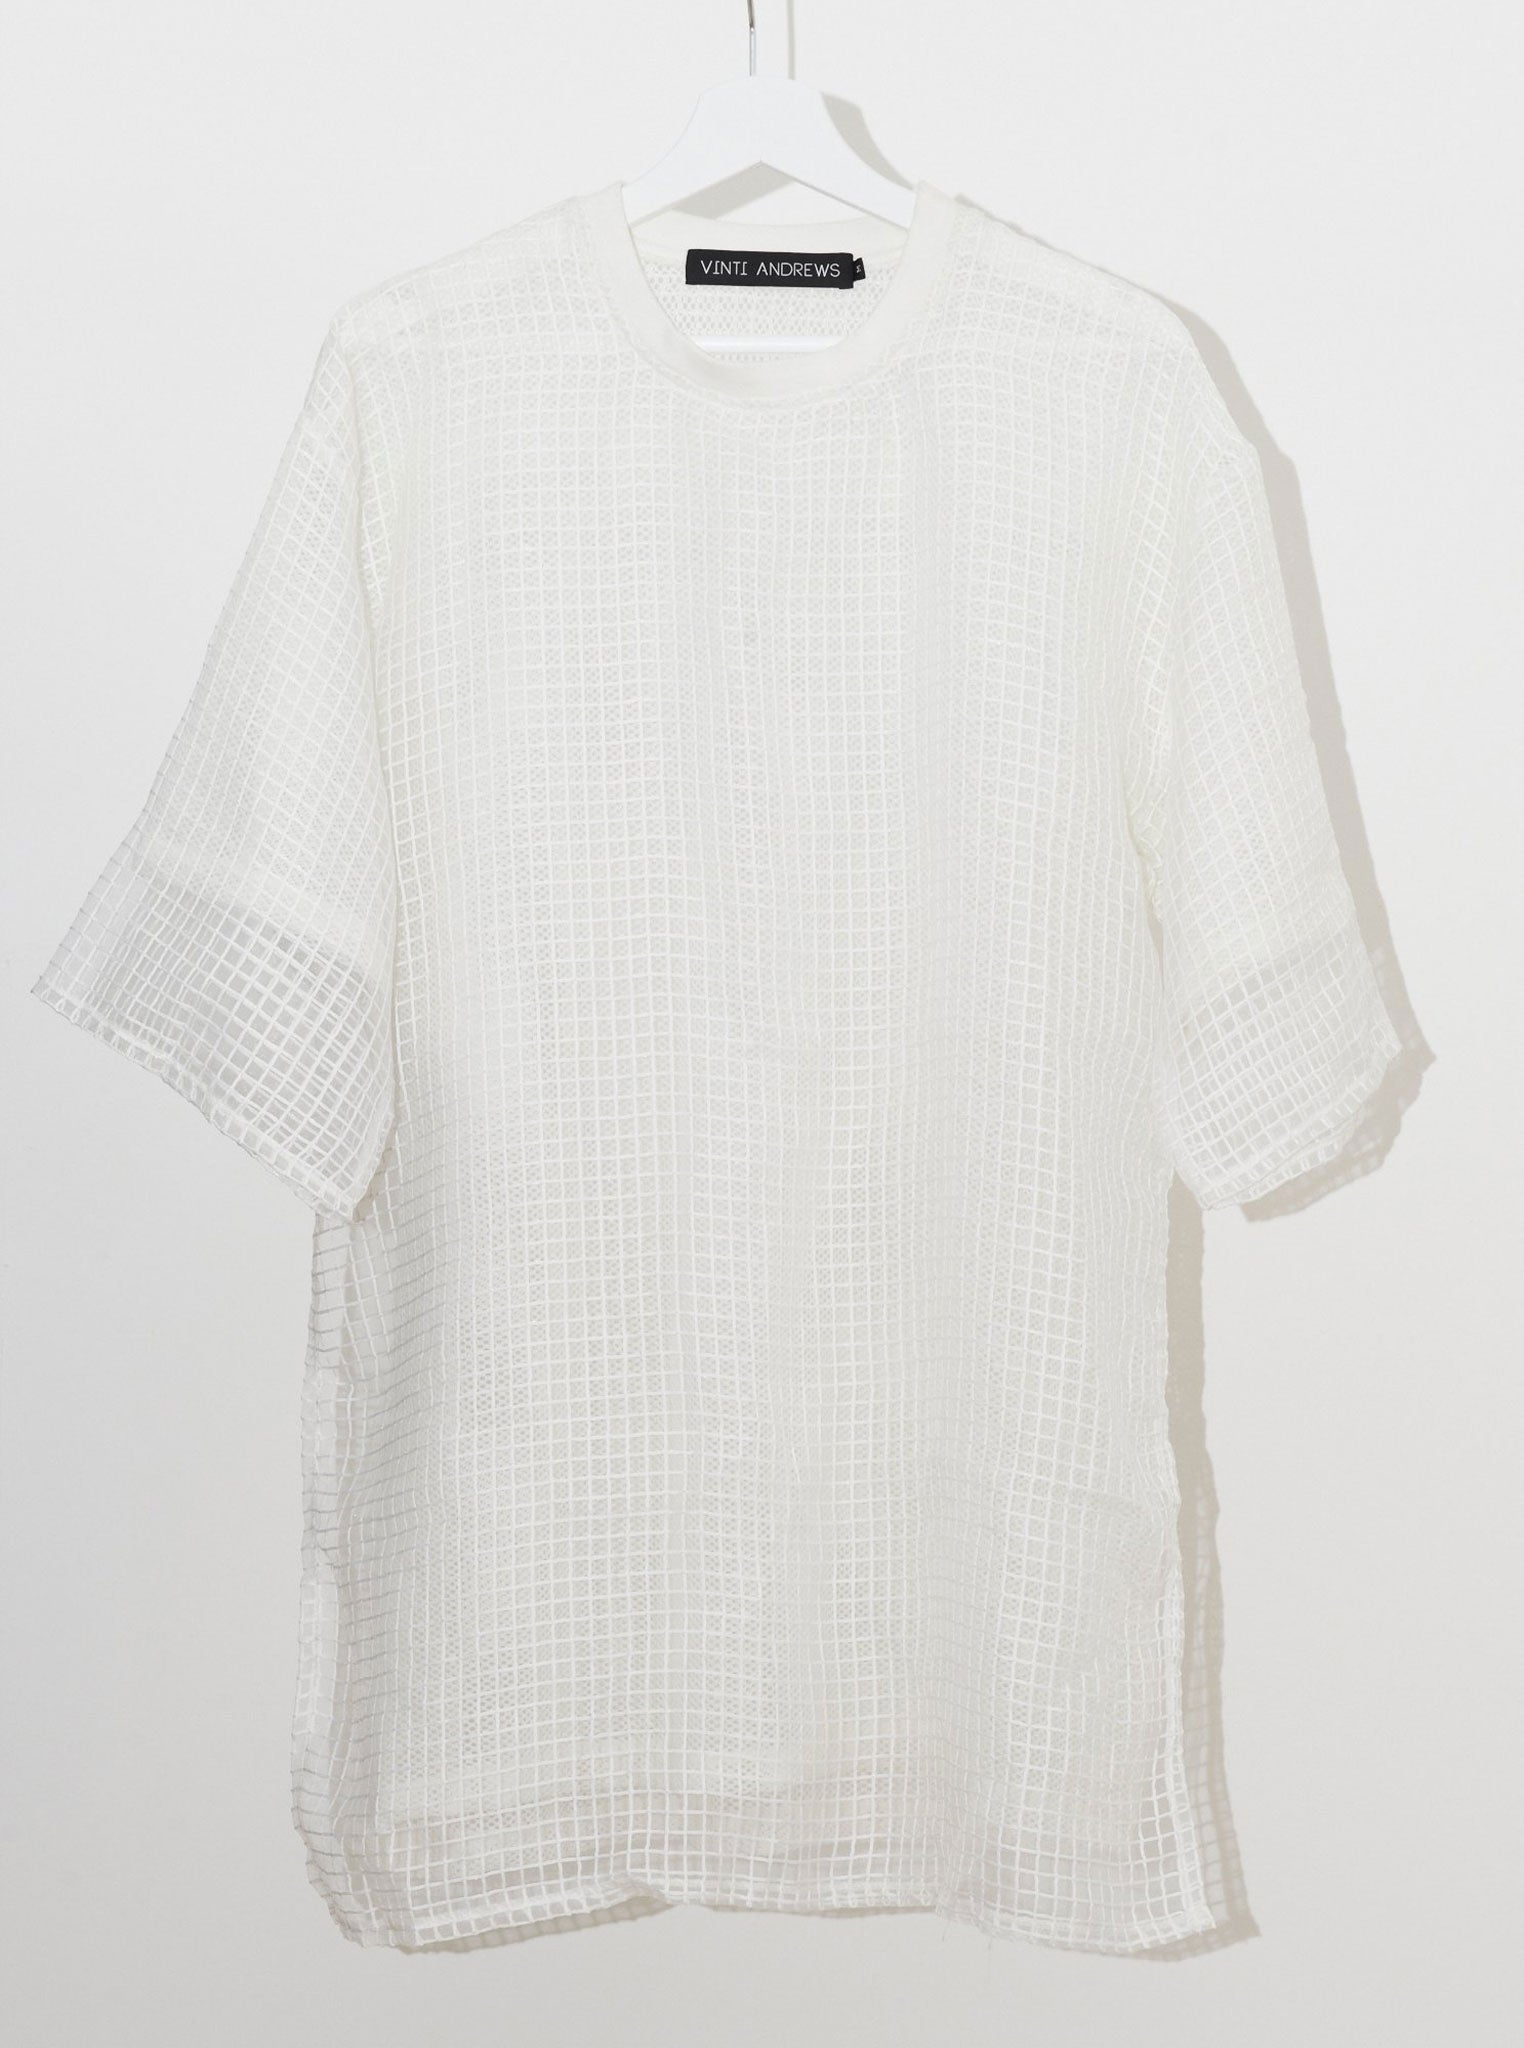 Vinti Andrews White Grid Organza T-Shirt